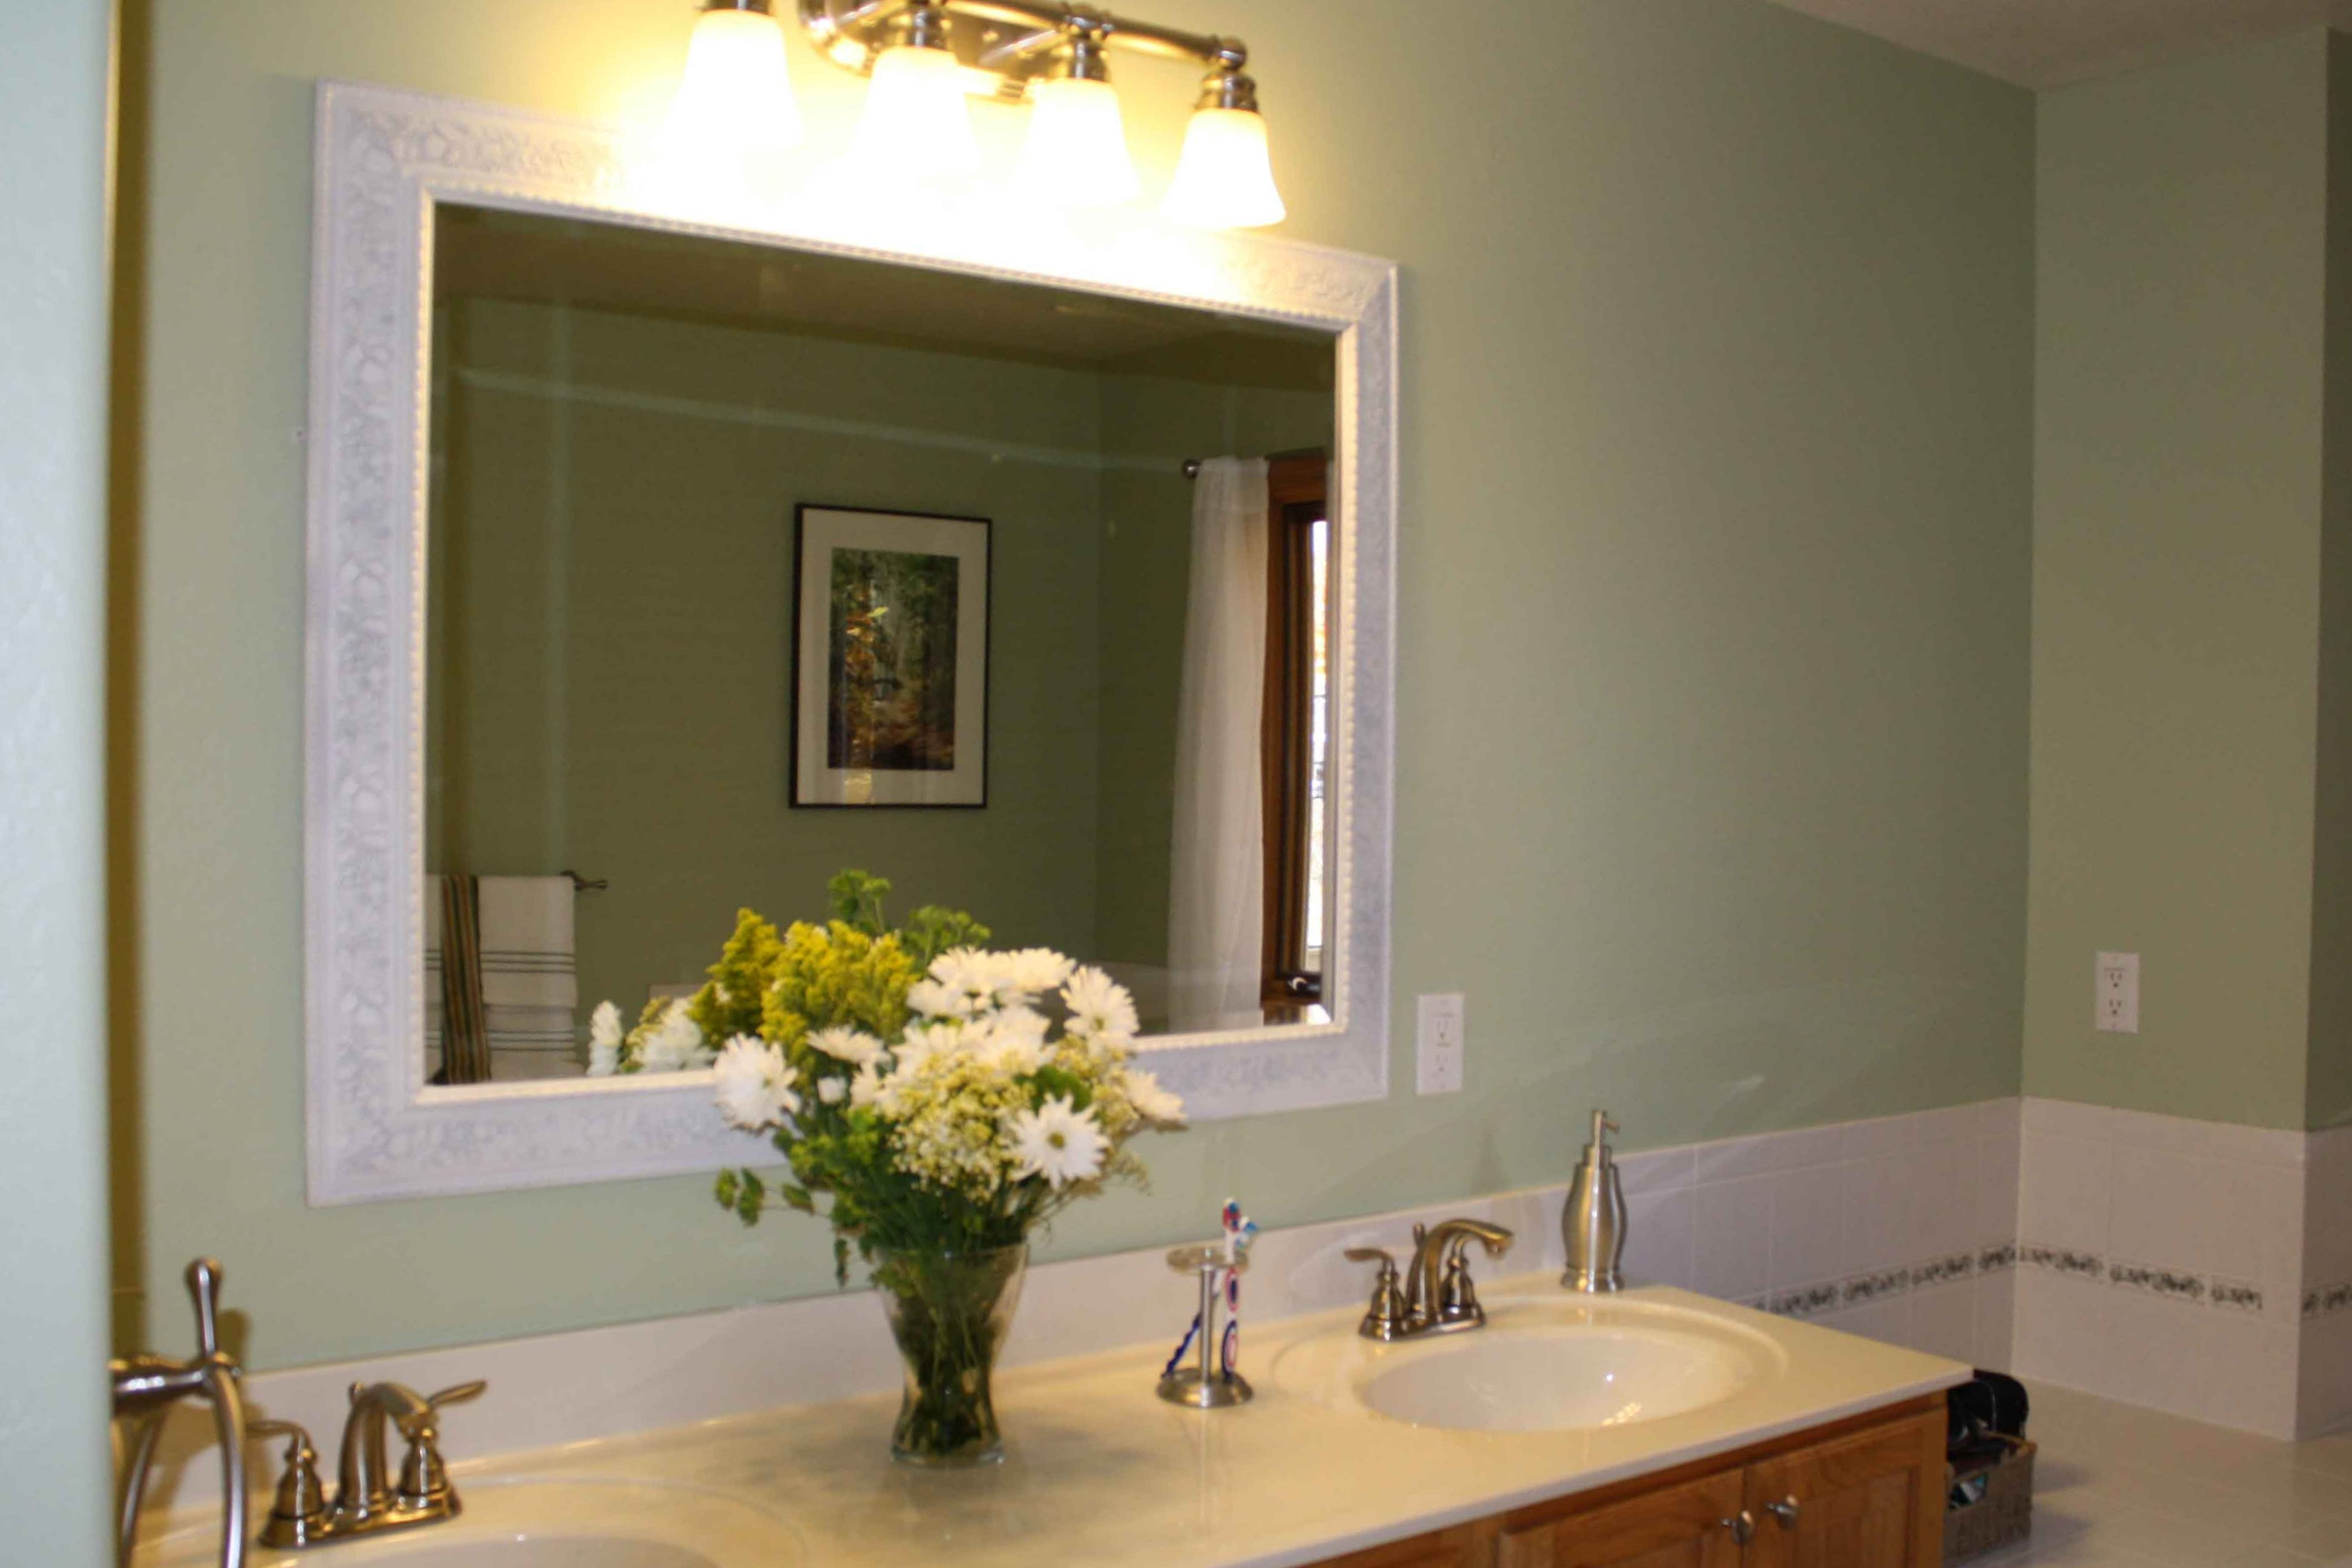 Updating Bathroom Light Fixtures diy bathroom updates | home staging : creative concepts and